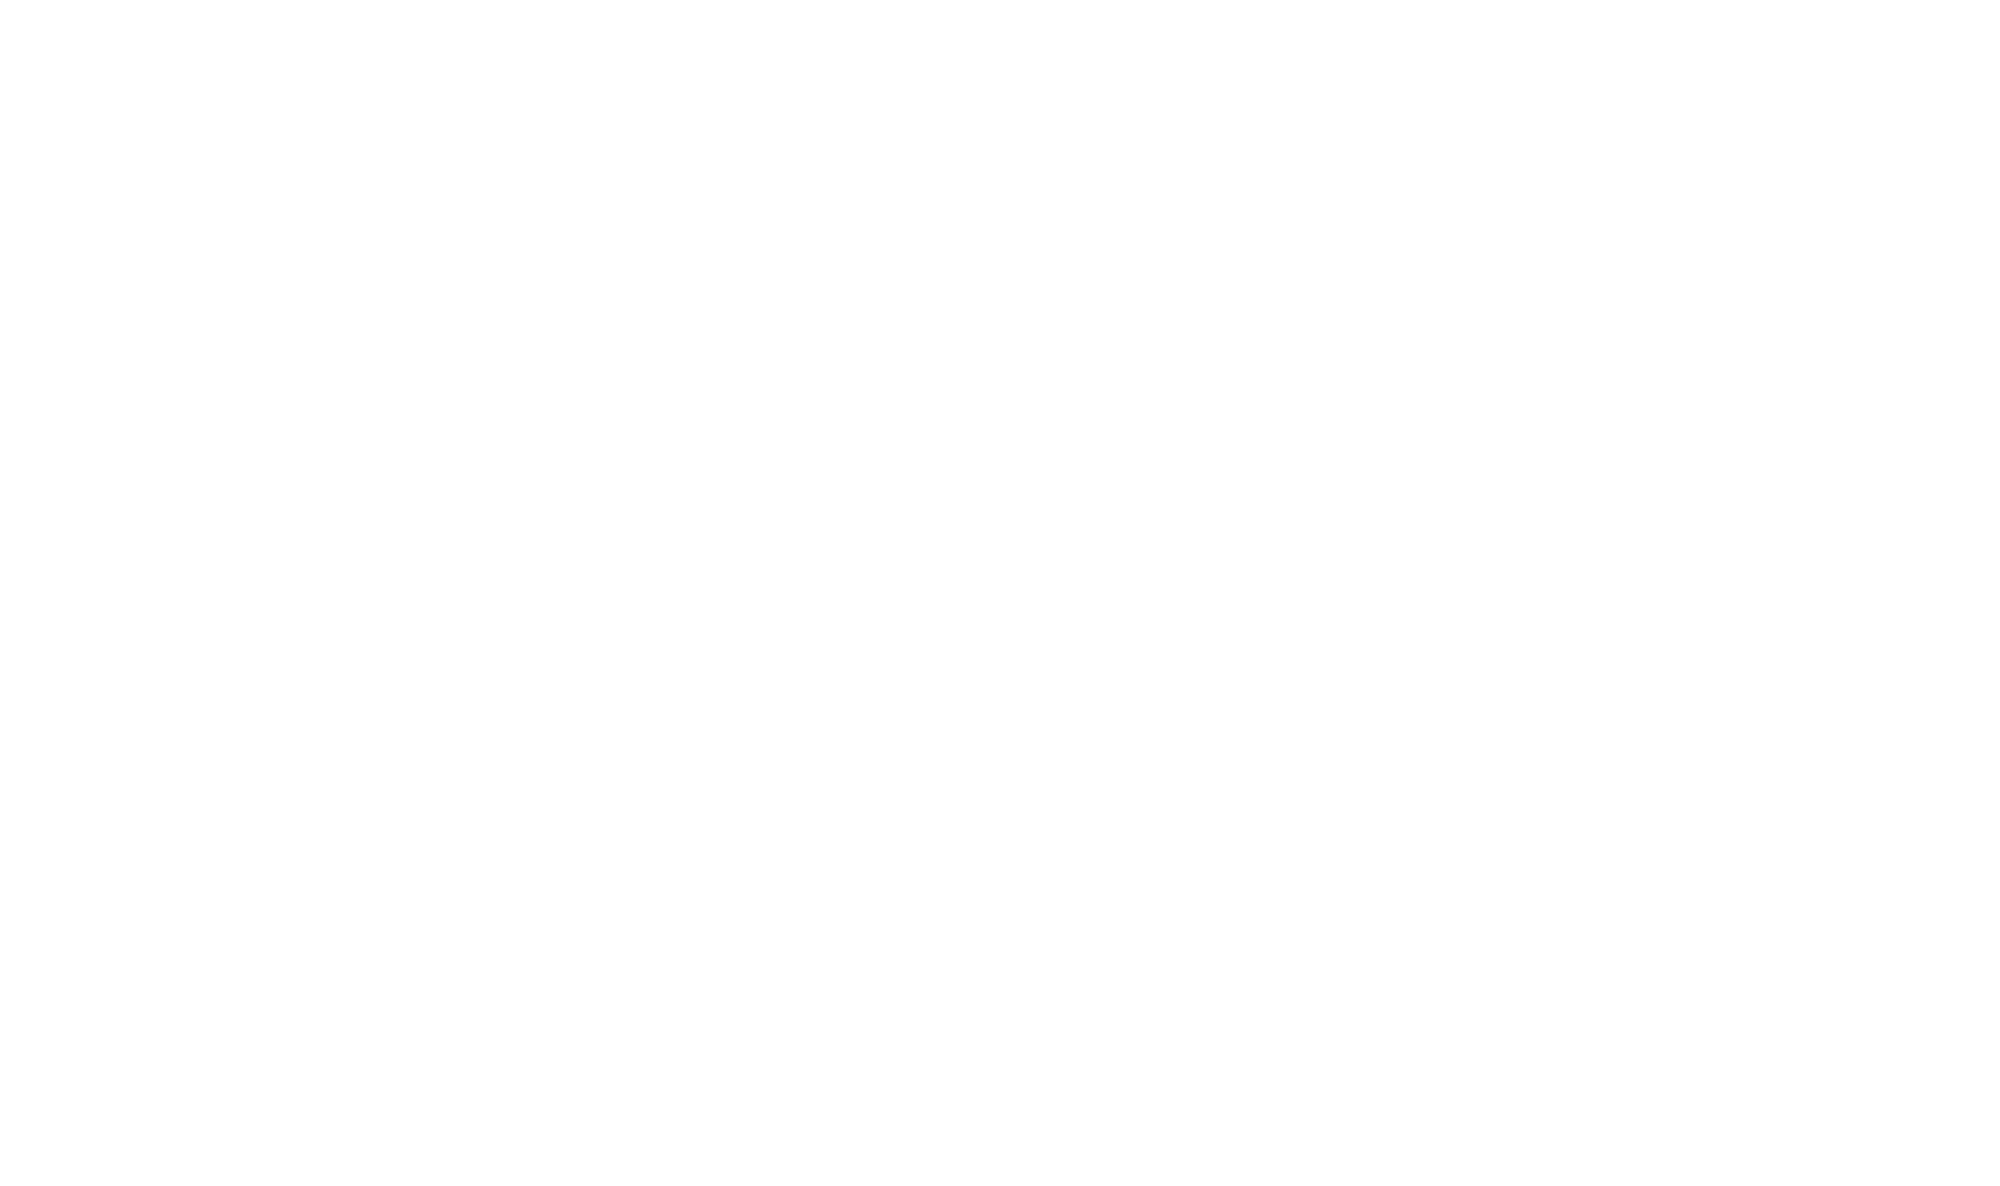 05-Fulcrum-Arts-Logo-Inverted.png